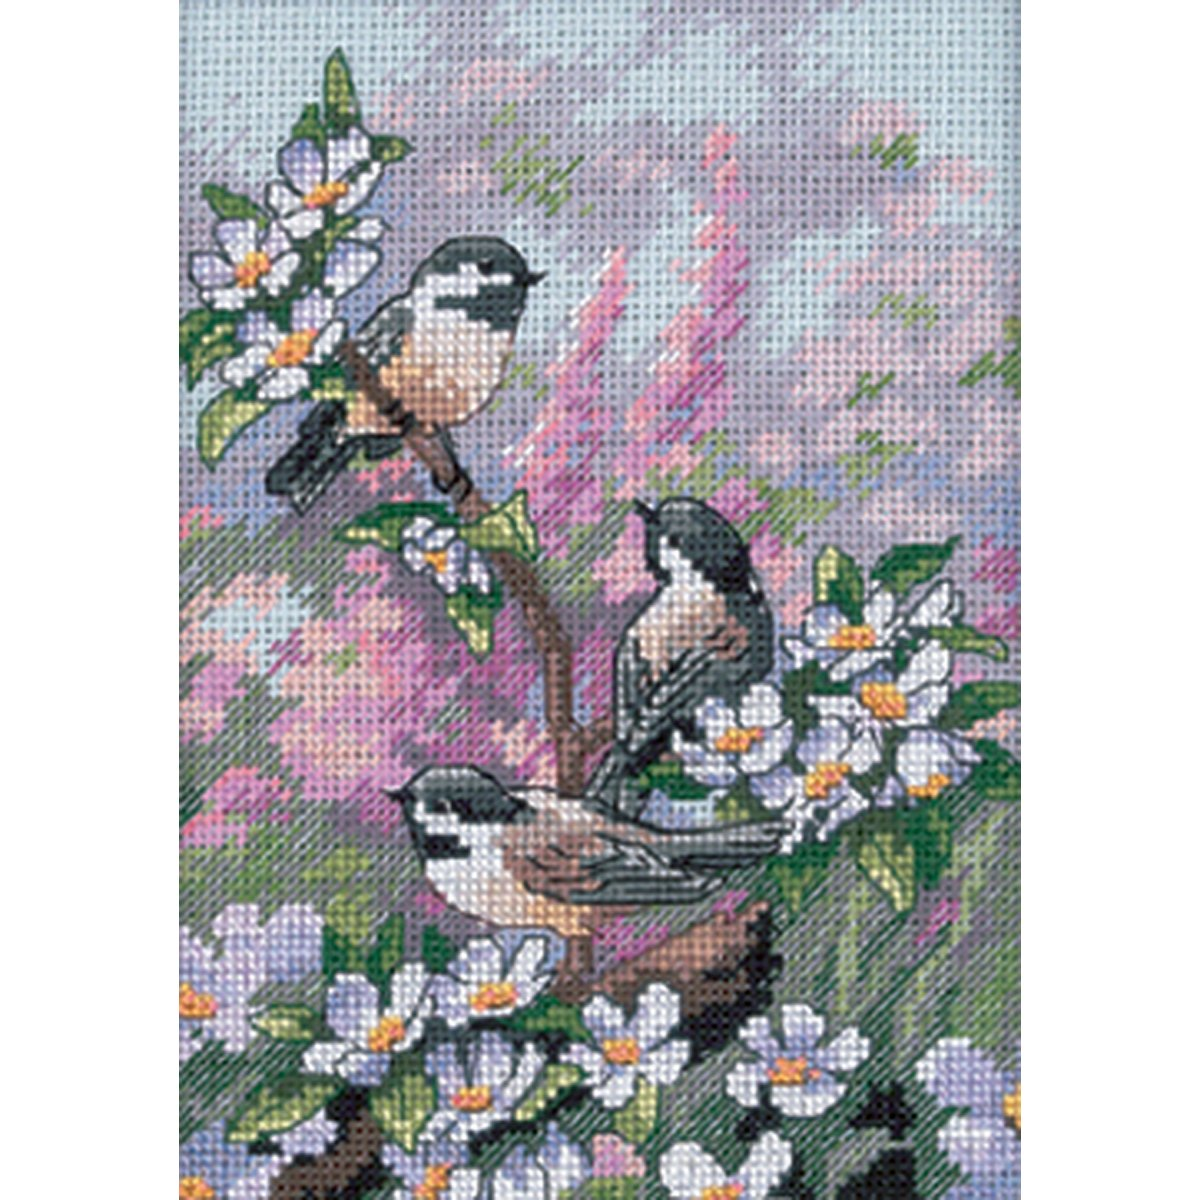 13 x 18cm Chickadees In Spring Counted Cross Stitch Kit Dimensions D06884